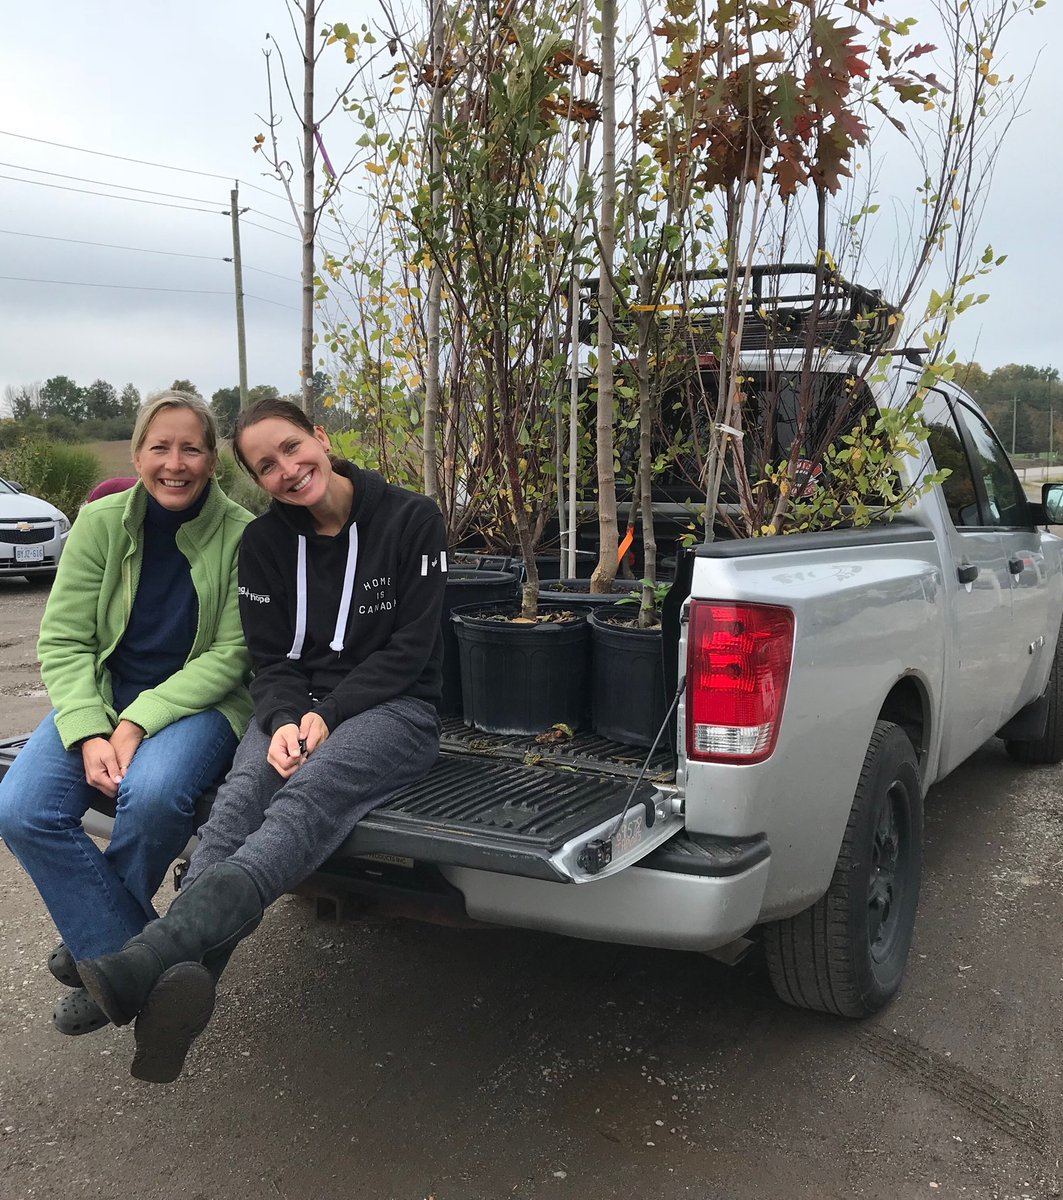 When the nursery starts marking down 50% the #gardensisters stock up. Aaah but we actually have to get them in the ground now. Pear, Apple, maple, oak, birch - a perfect day to plant. <br>http://pic.twitter.com/40UJqbiUjz